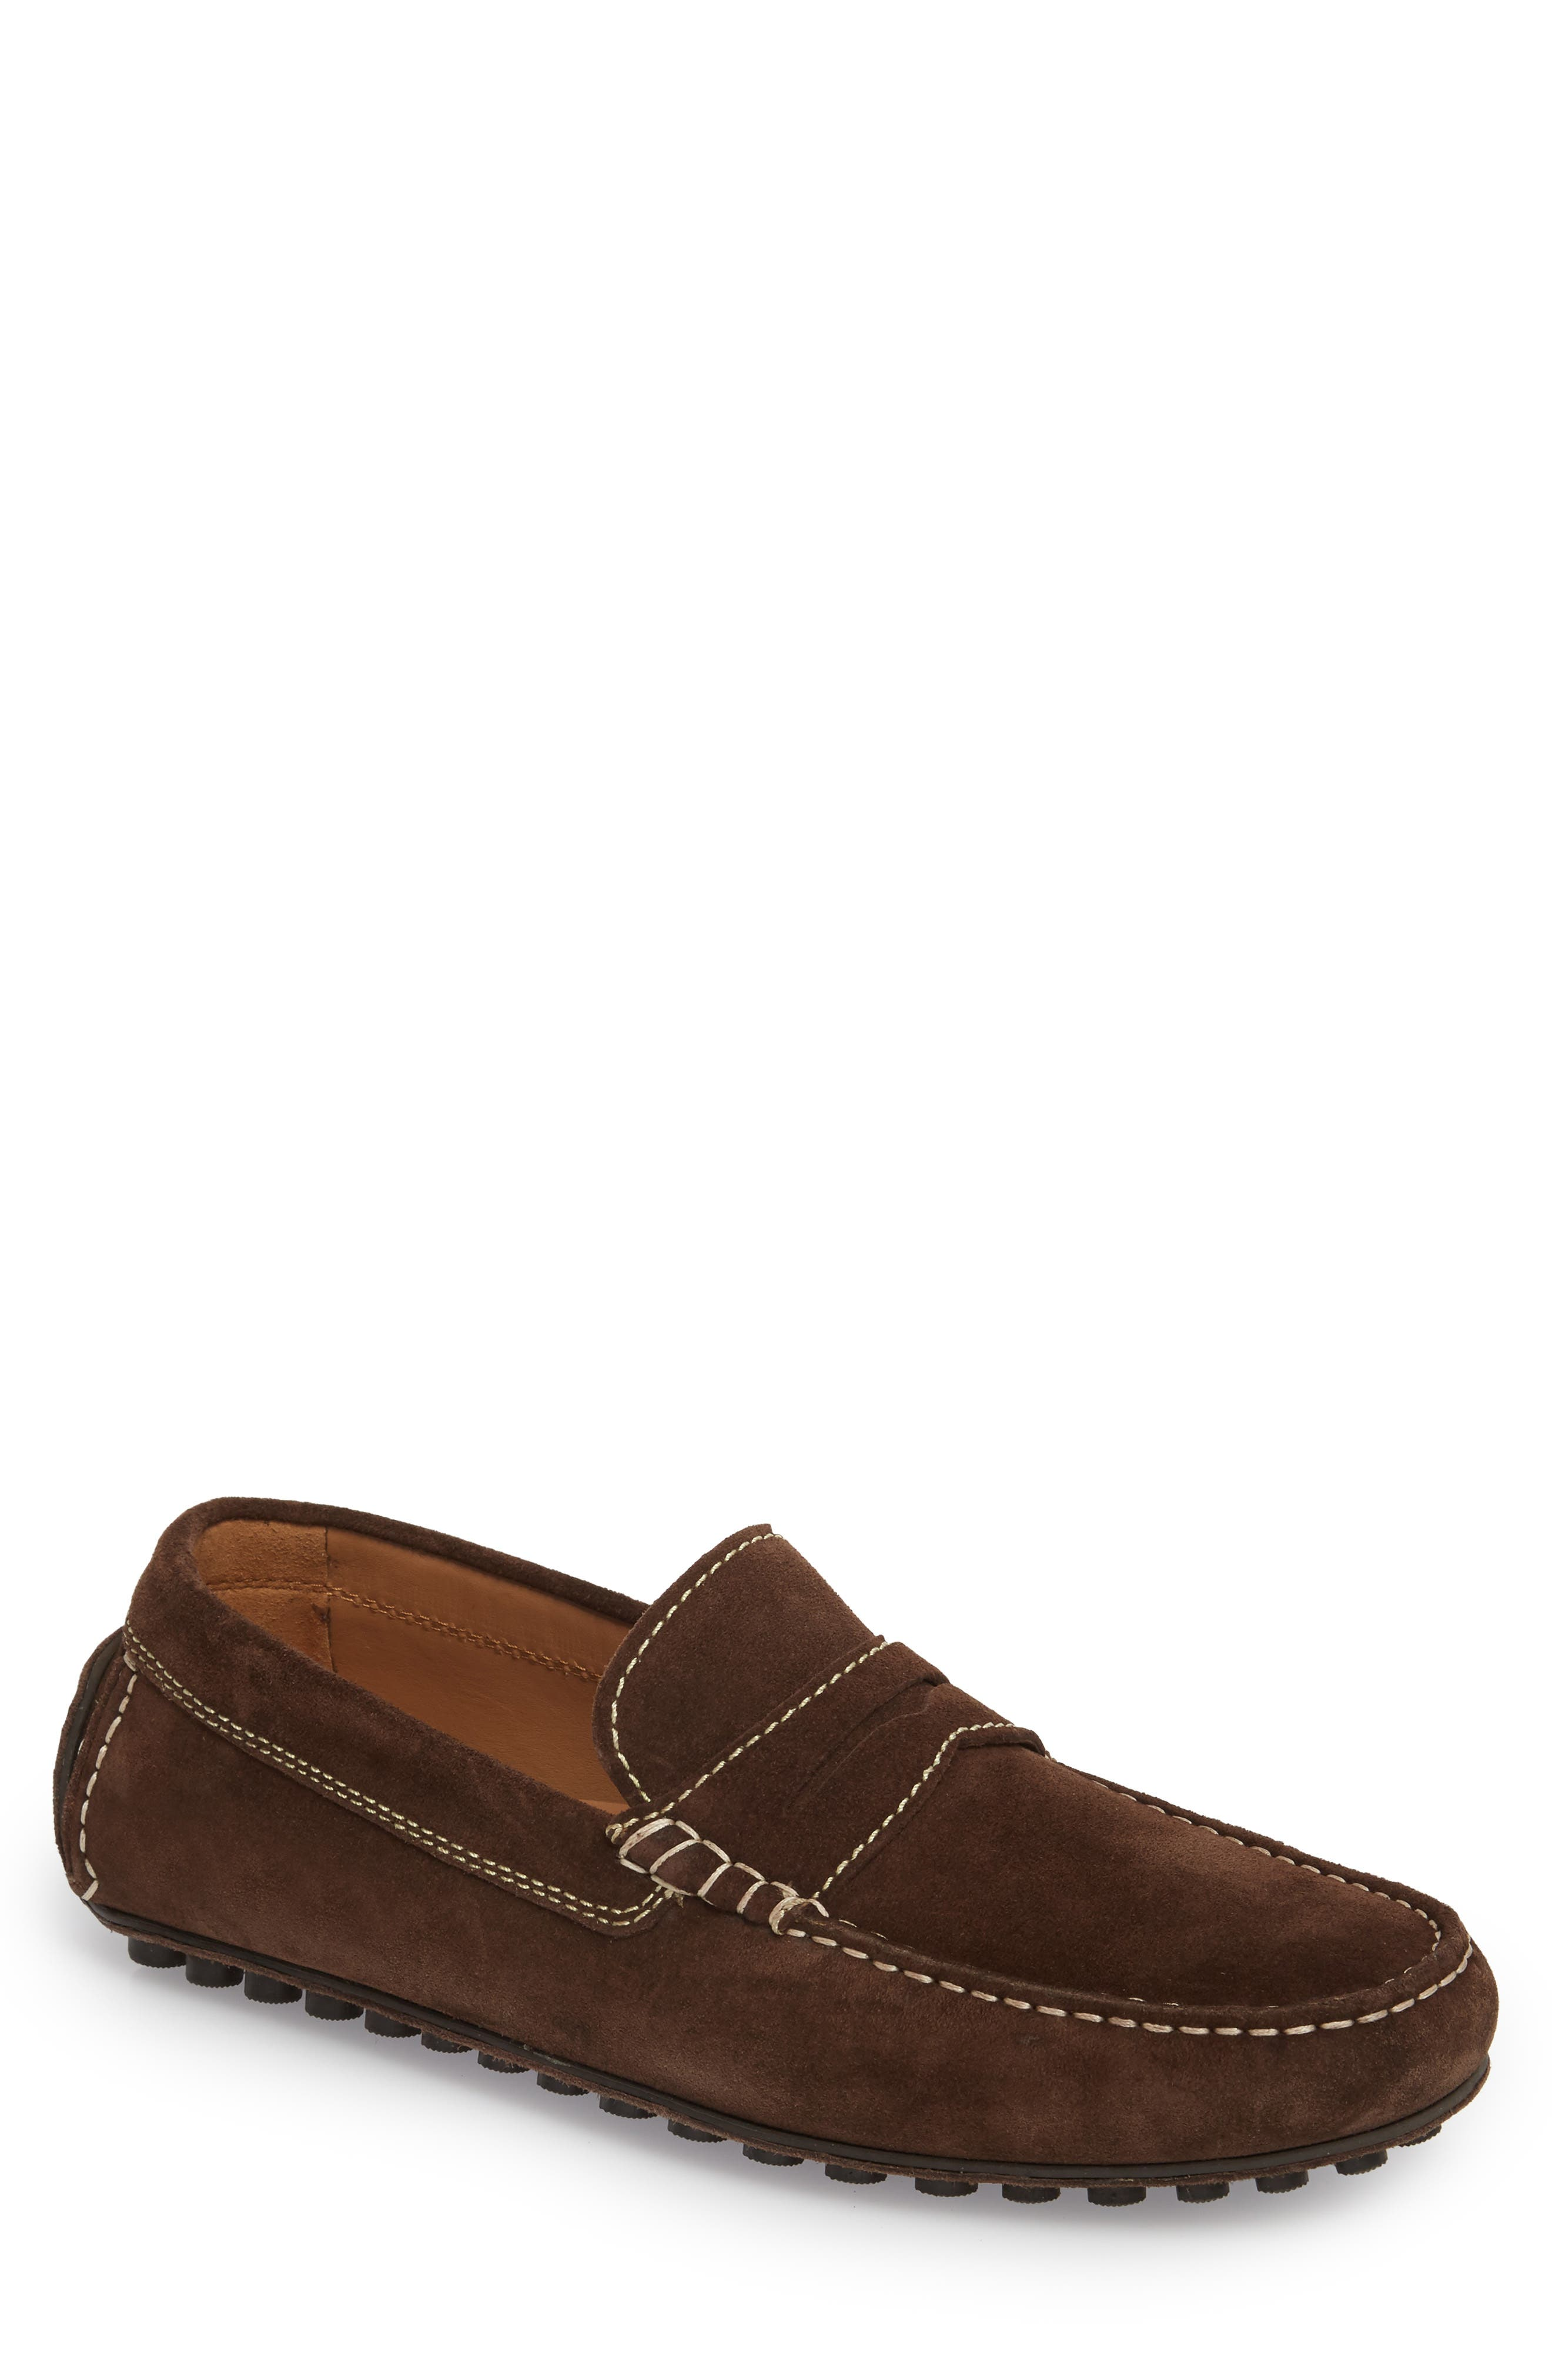 Le Mans Penny Driving Loafer,                         Main,                         color, Chocolate